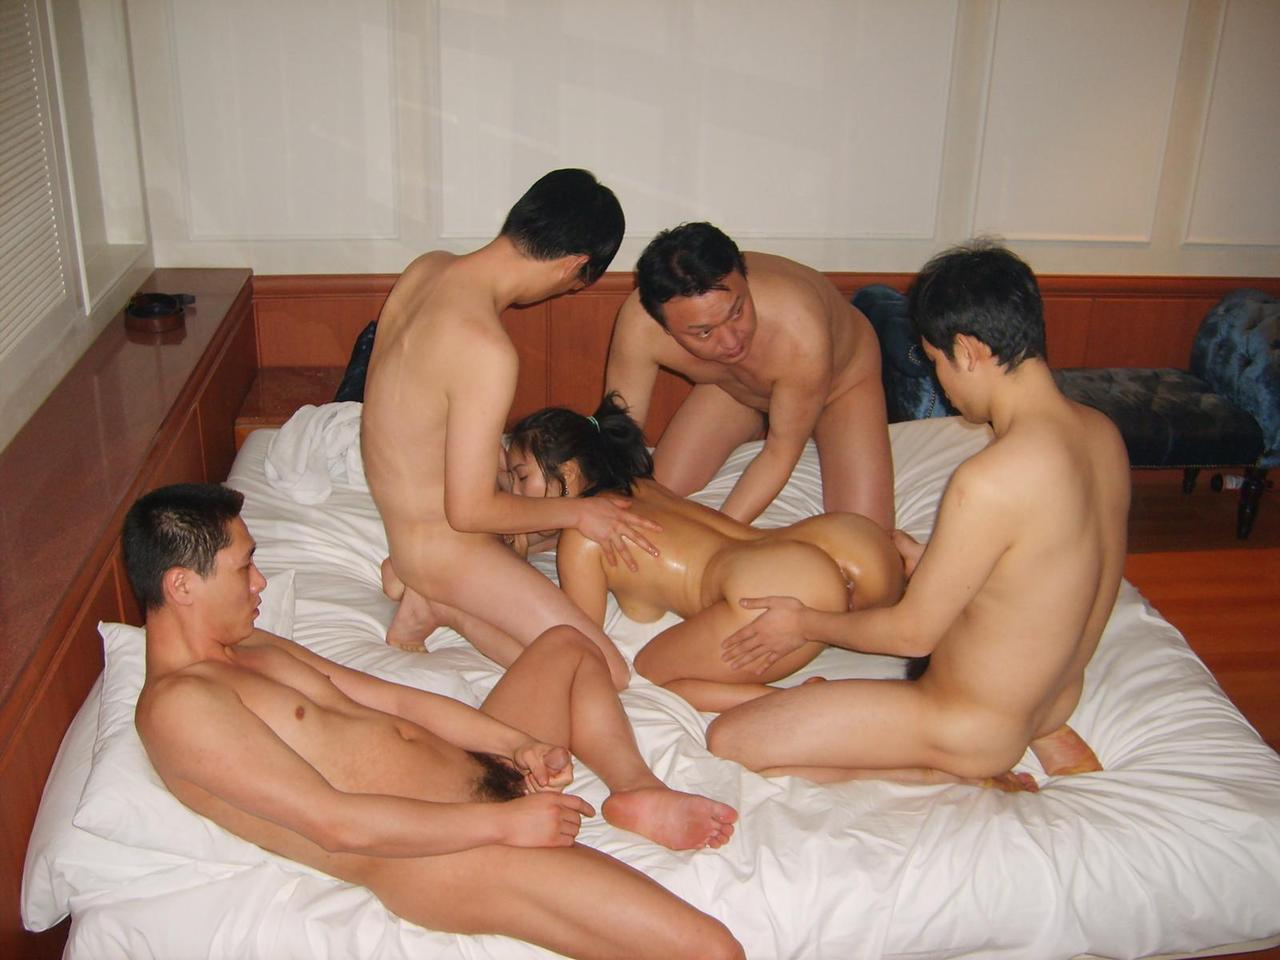 Idea Chinese group sex scandal was